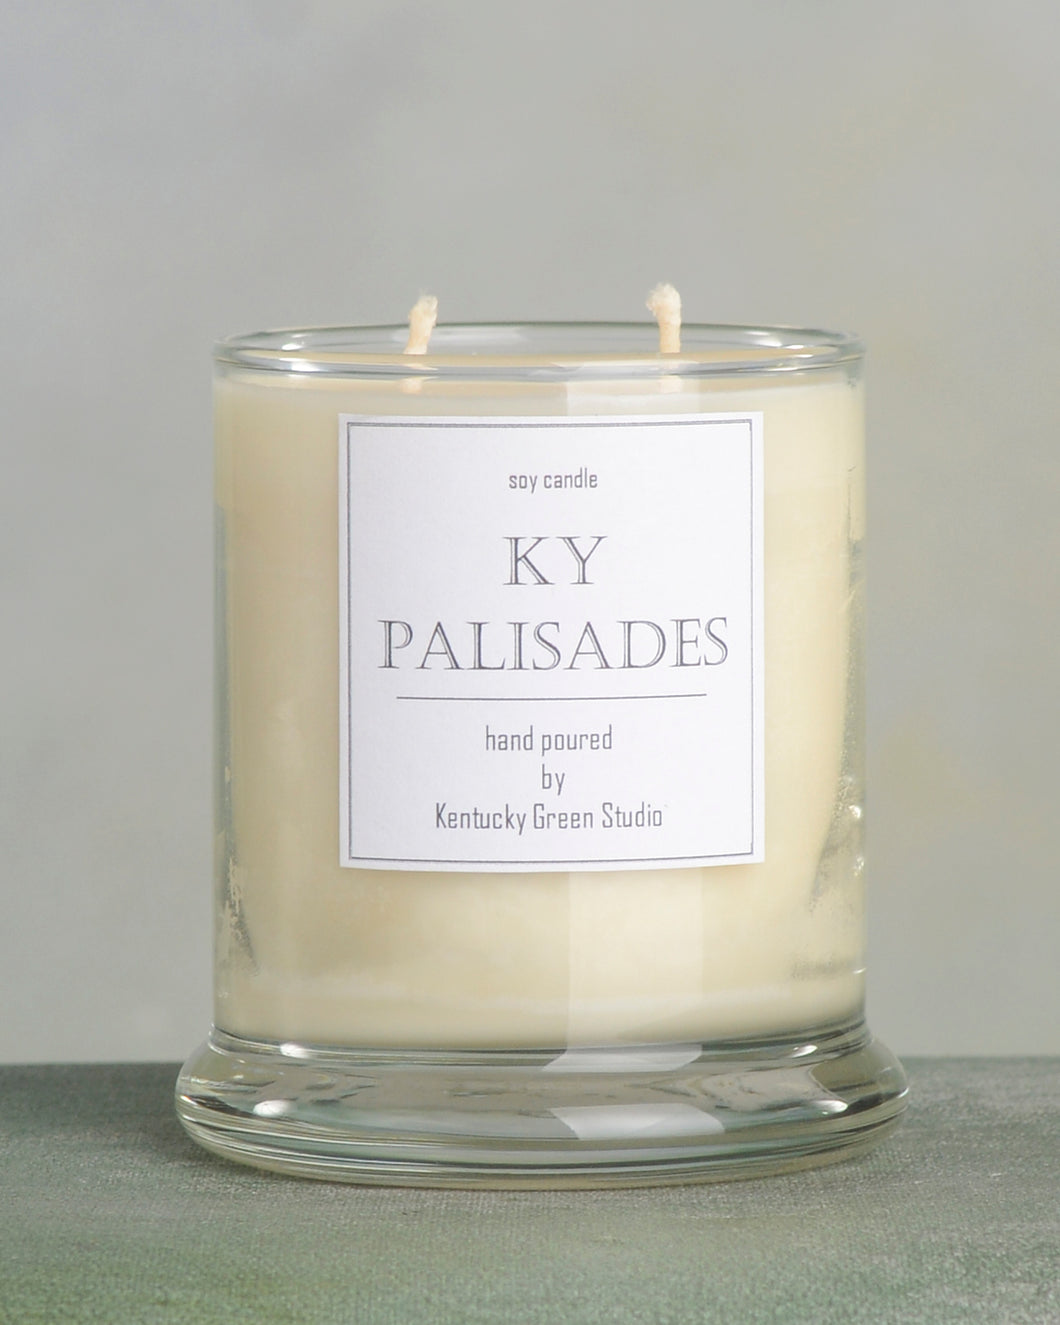 Kentucky Palisades Soy Candles made in Lexington, Kentucky (KY)